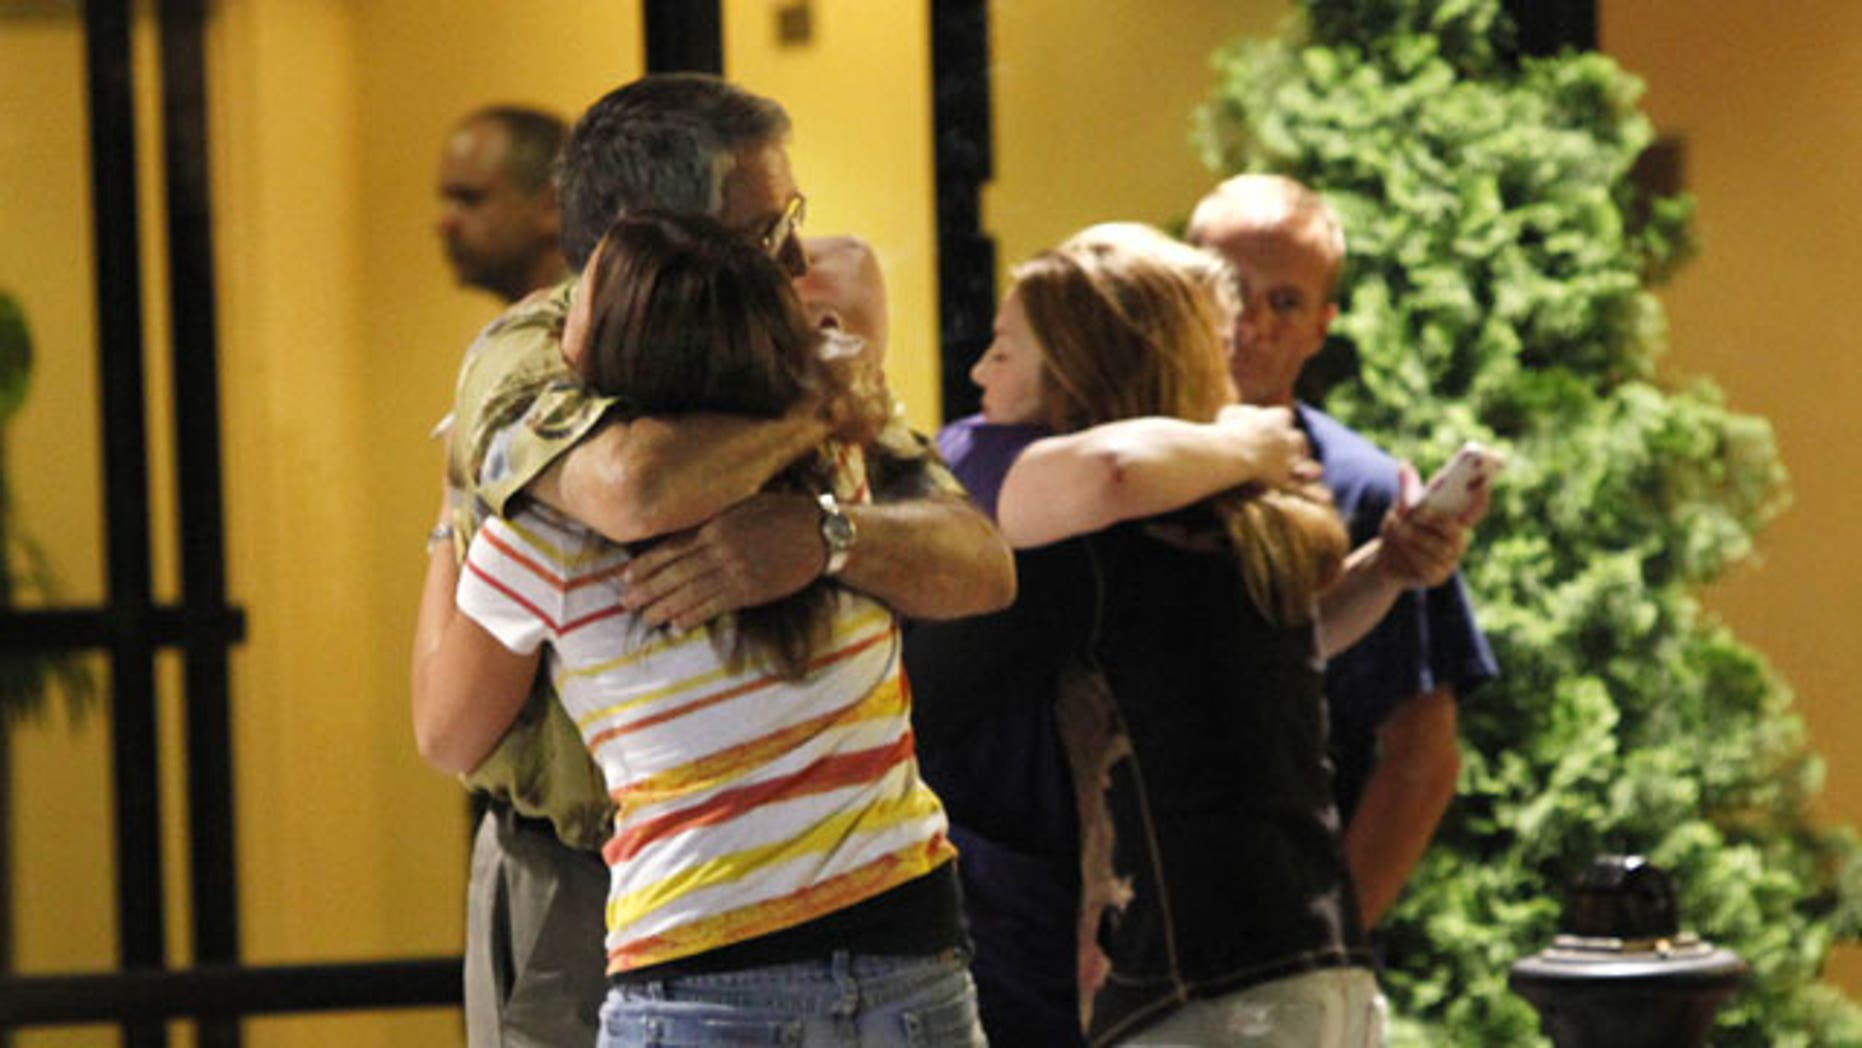 Stanley Murray, left, father of Chad Murray, who was rescued from the Deepwater Horizon oil rig that exploded in the Gulf of Mexico, and Christy Murray, background right, hug loved ones of their unidentified neighbor, a crew member reported missing, after surviving crew members arrived at a hotel in Kenner, La., Thursday, April 22, 2010.